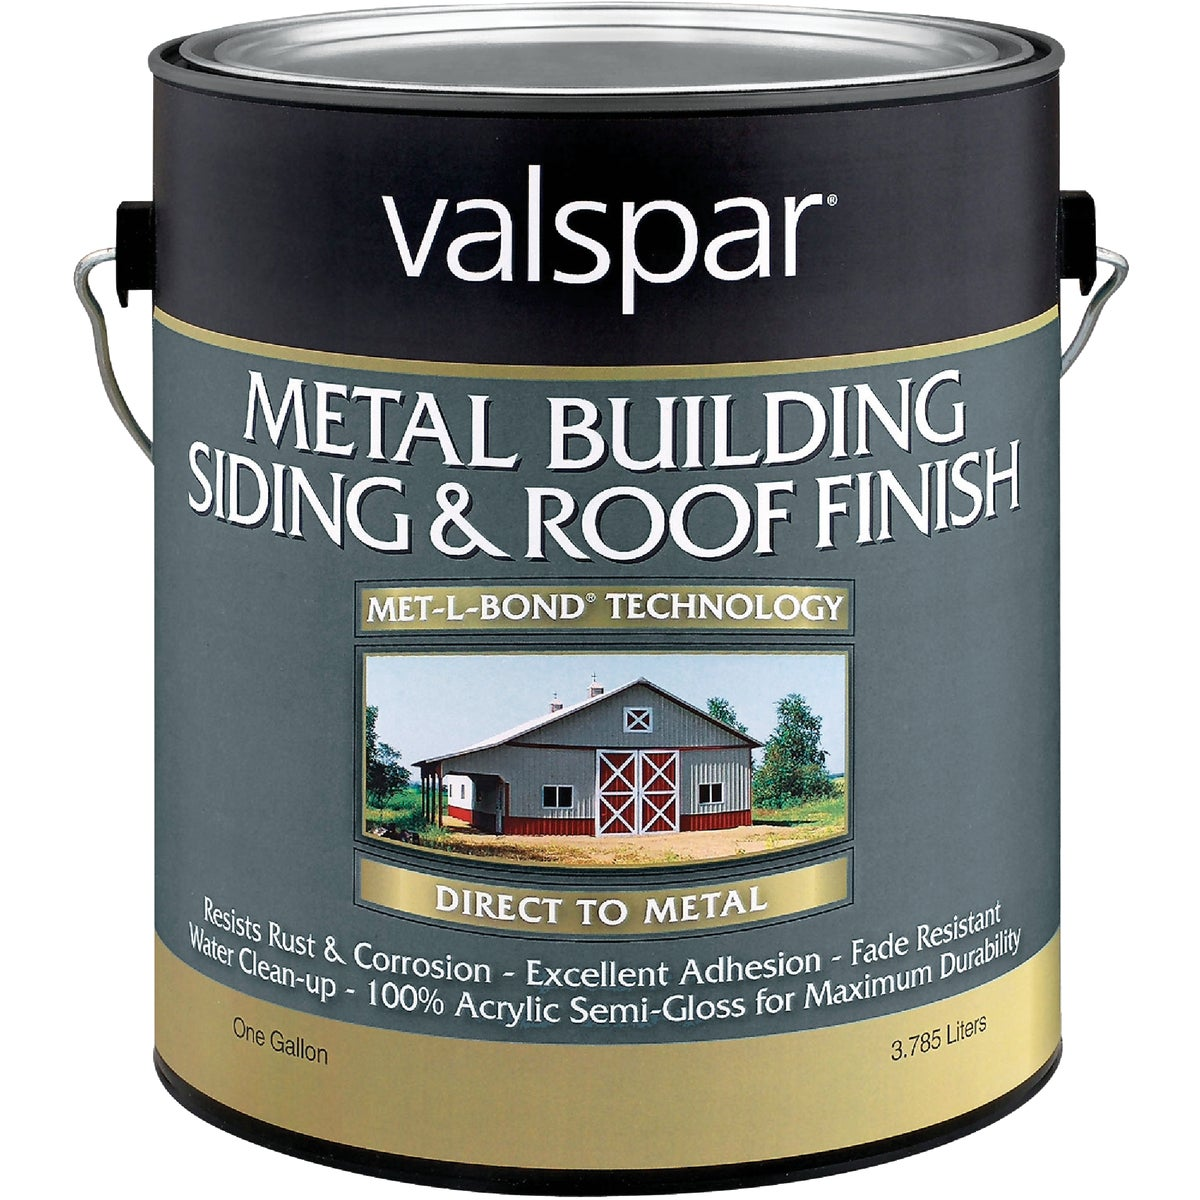 LTX BRT WHITE ROOF PAINT - 027.0004260.007 by Valspar Corp